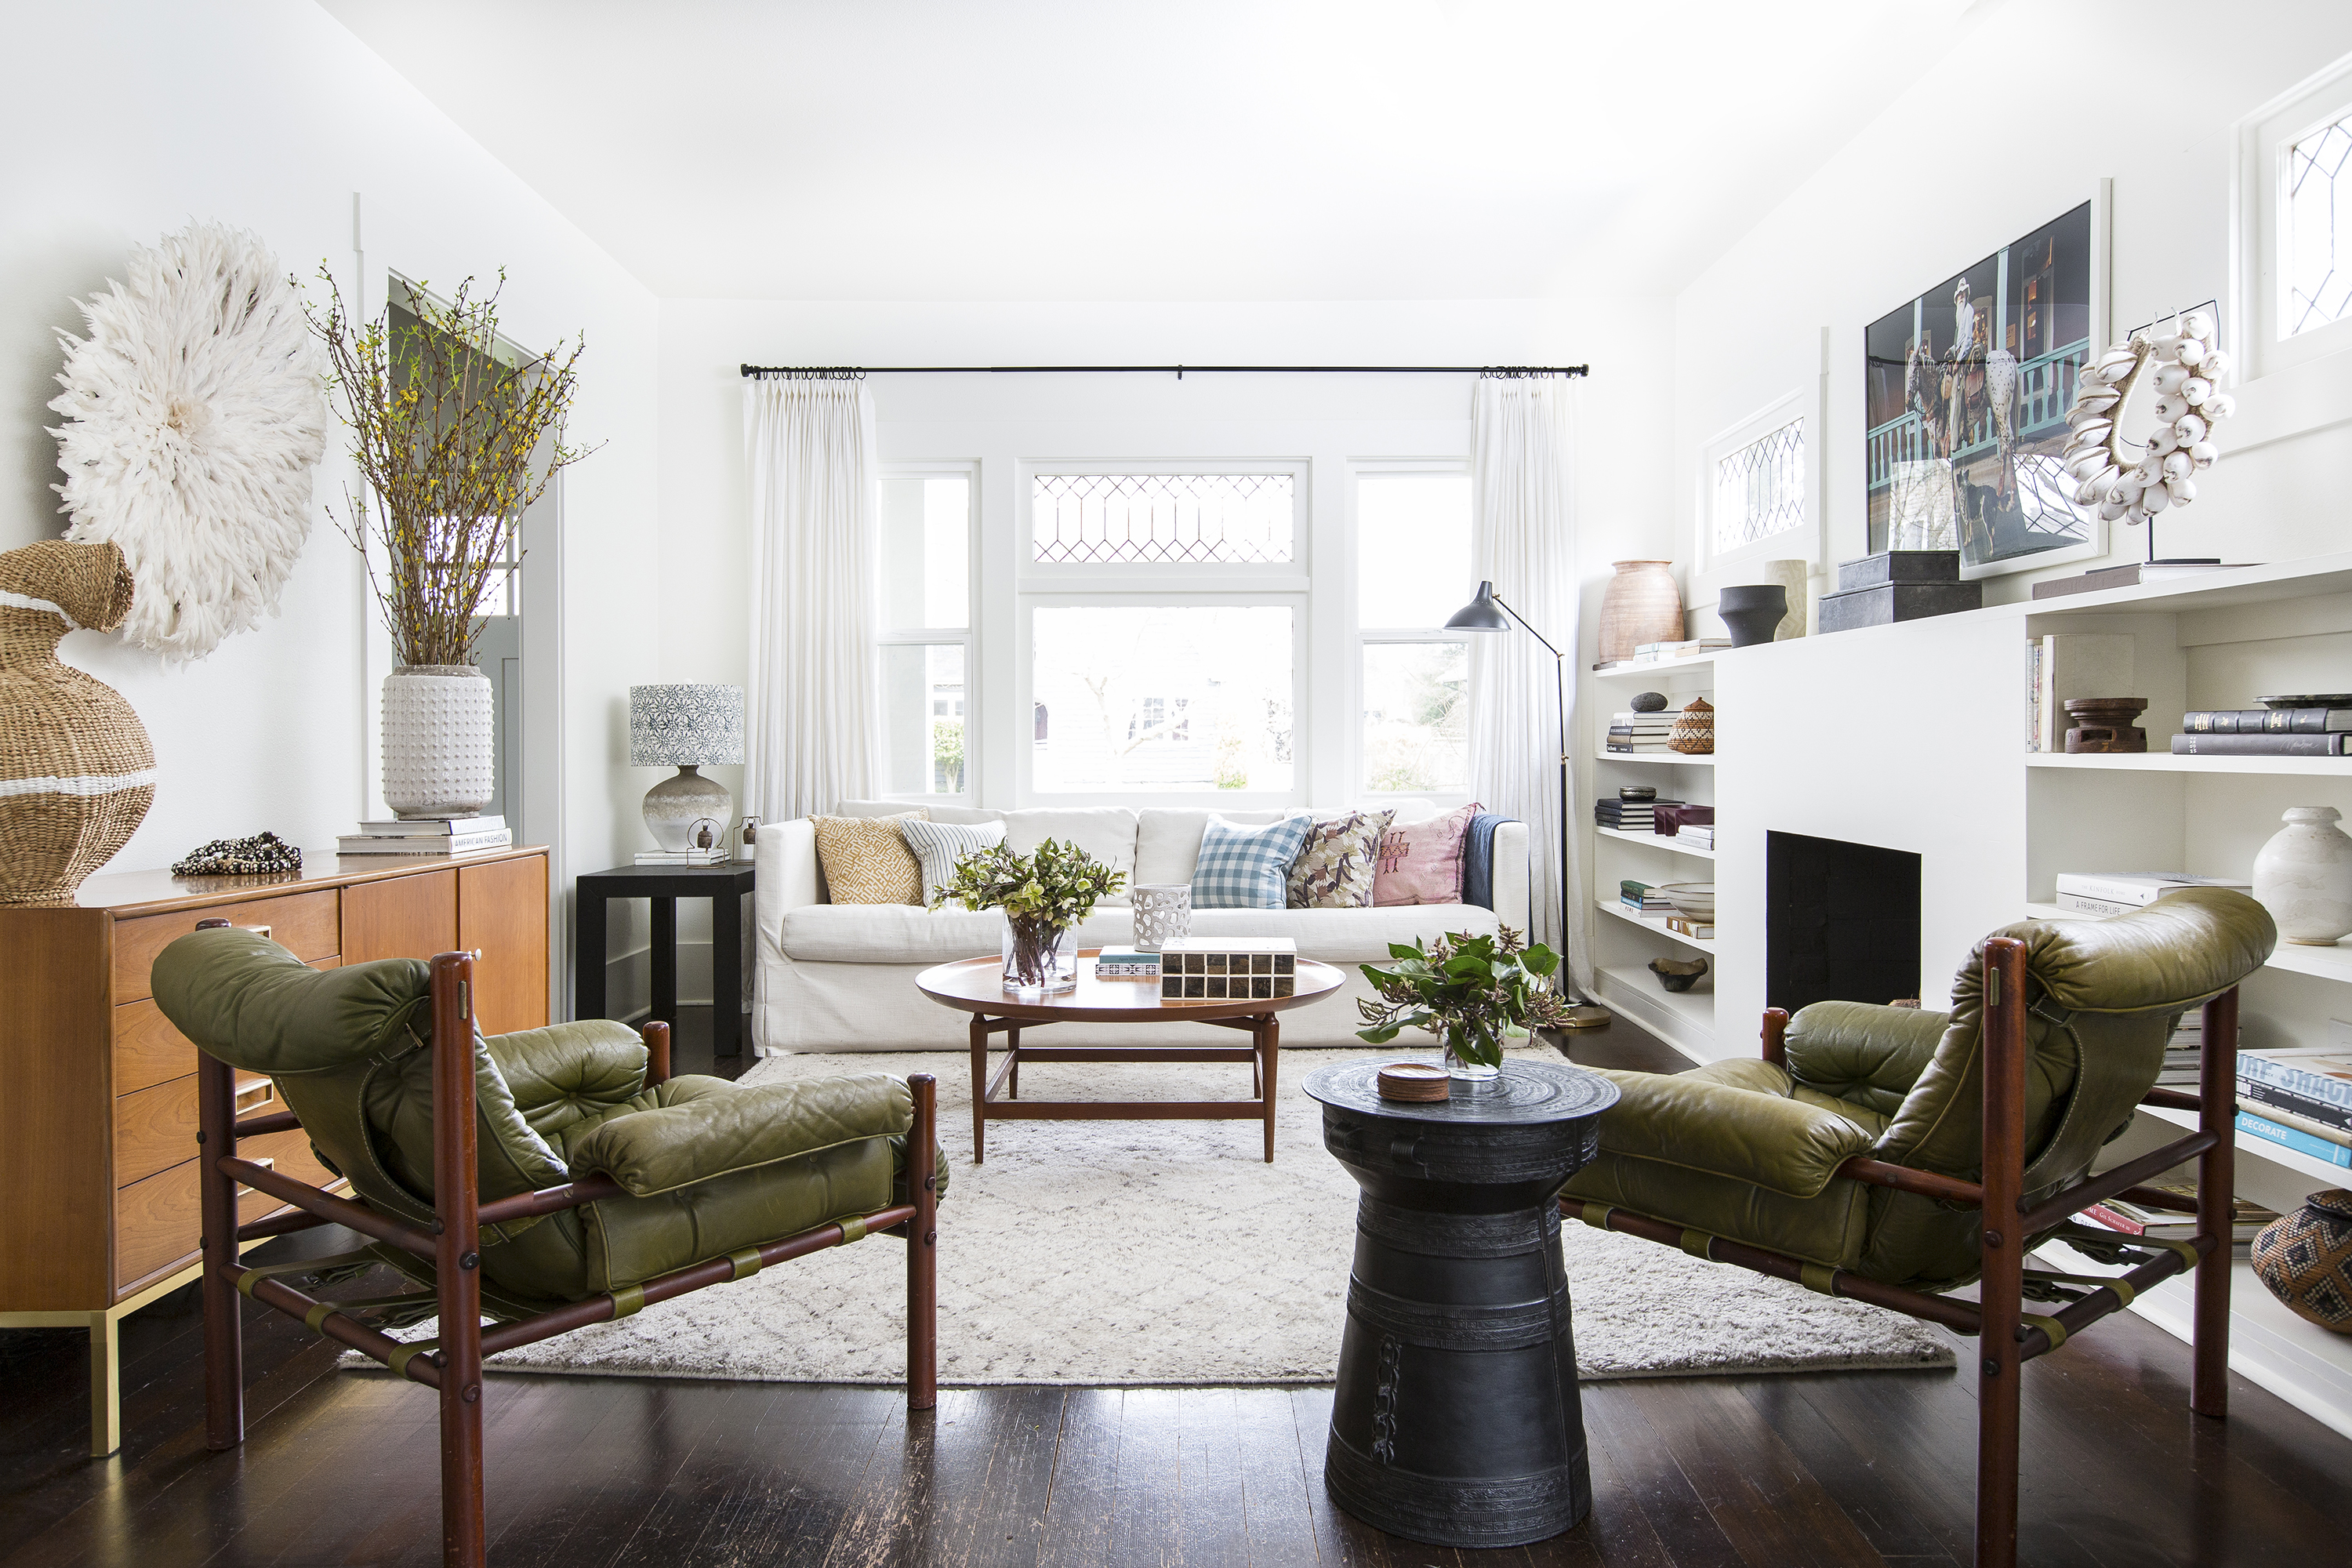 Curbed Archives - Interior Design - Page 5